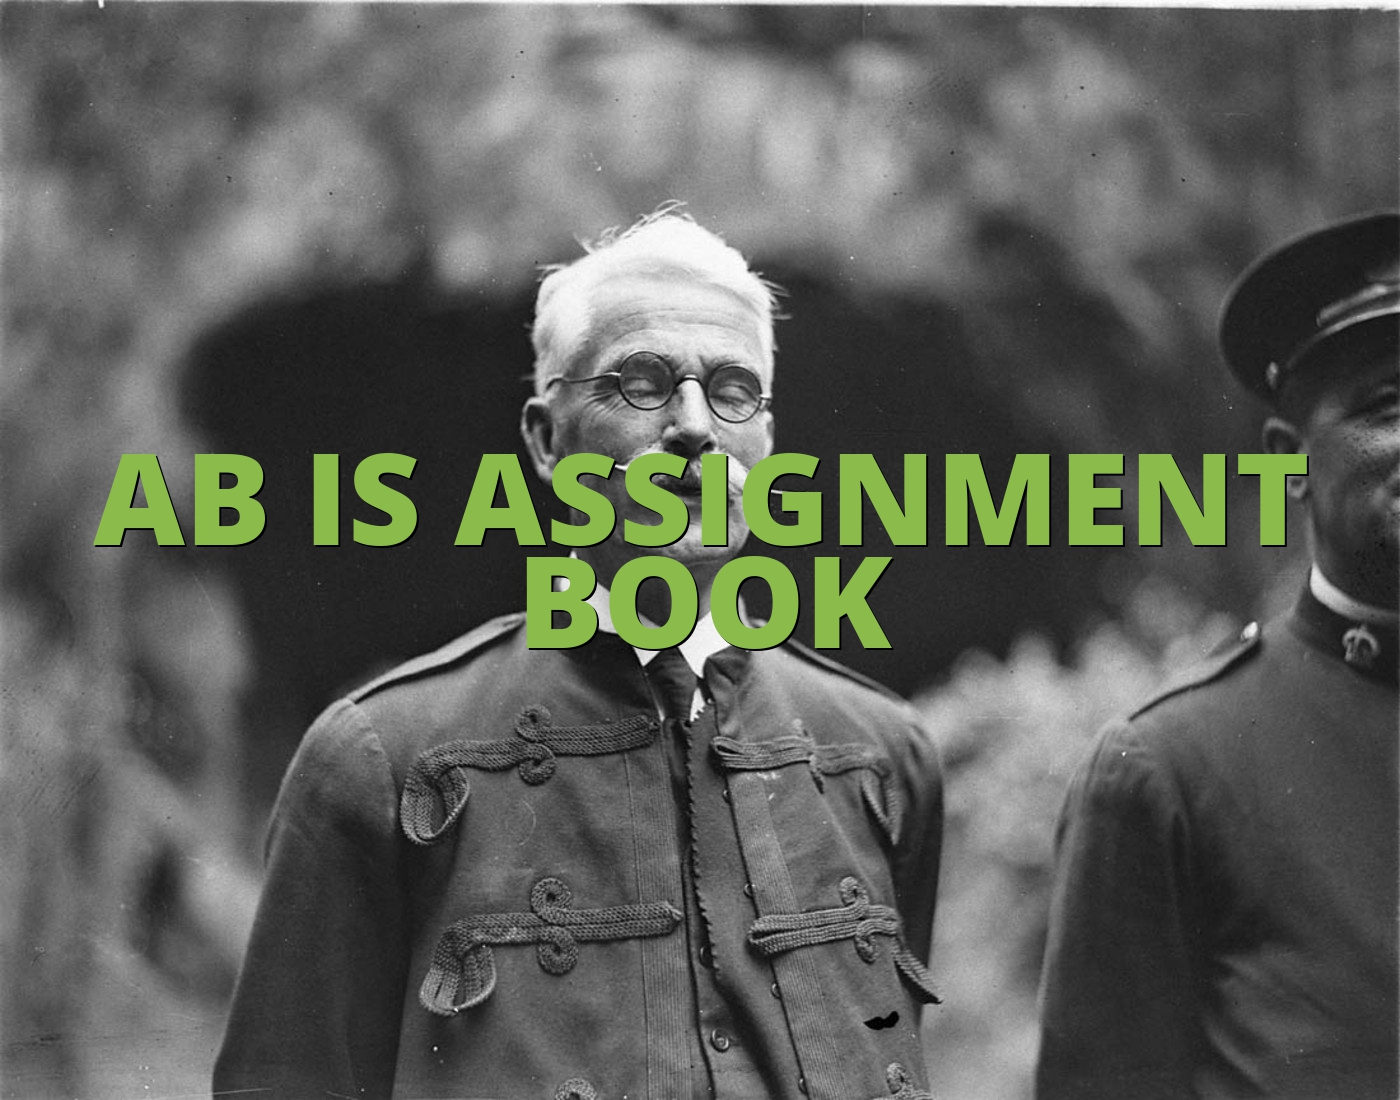 AB IS ASSIGNMENT BOOK